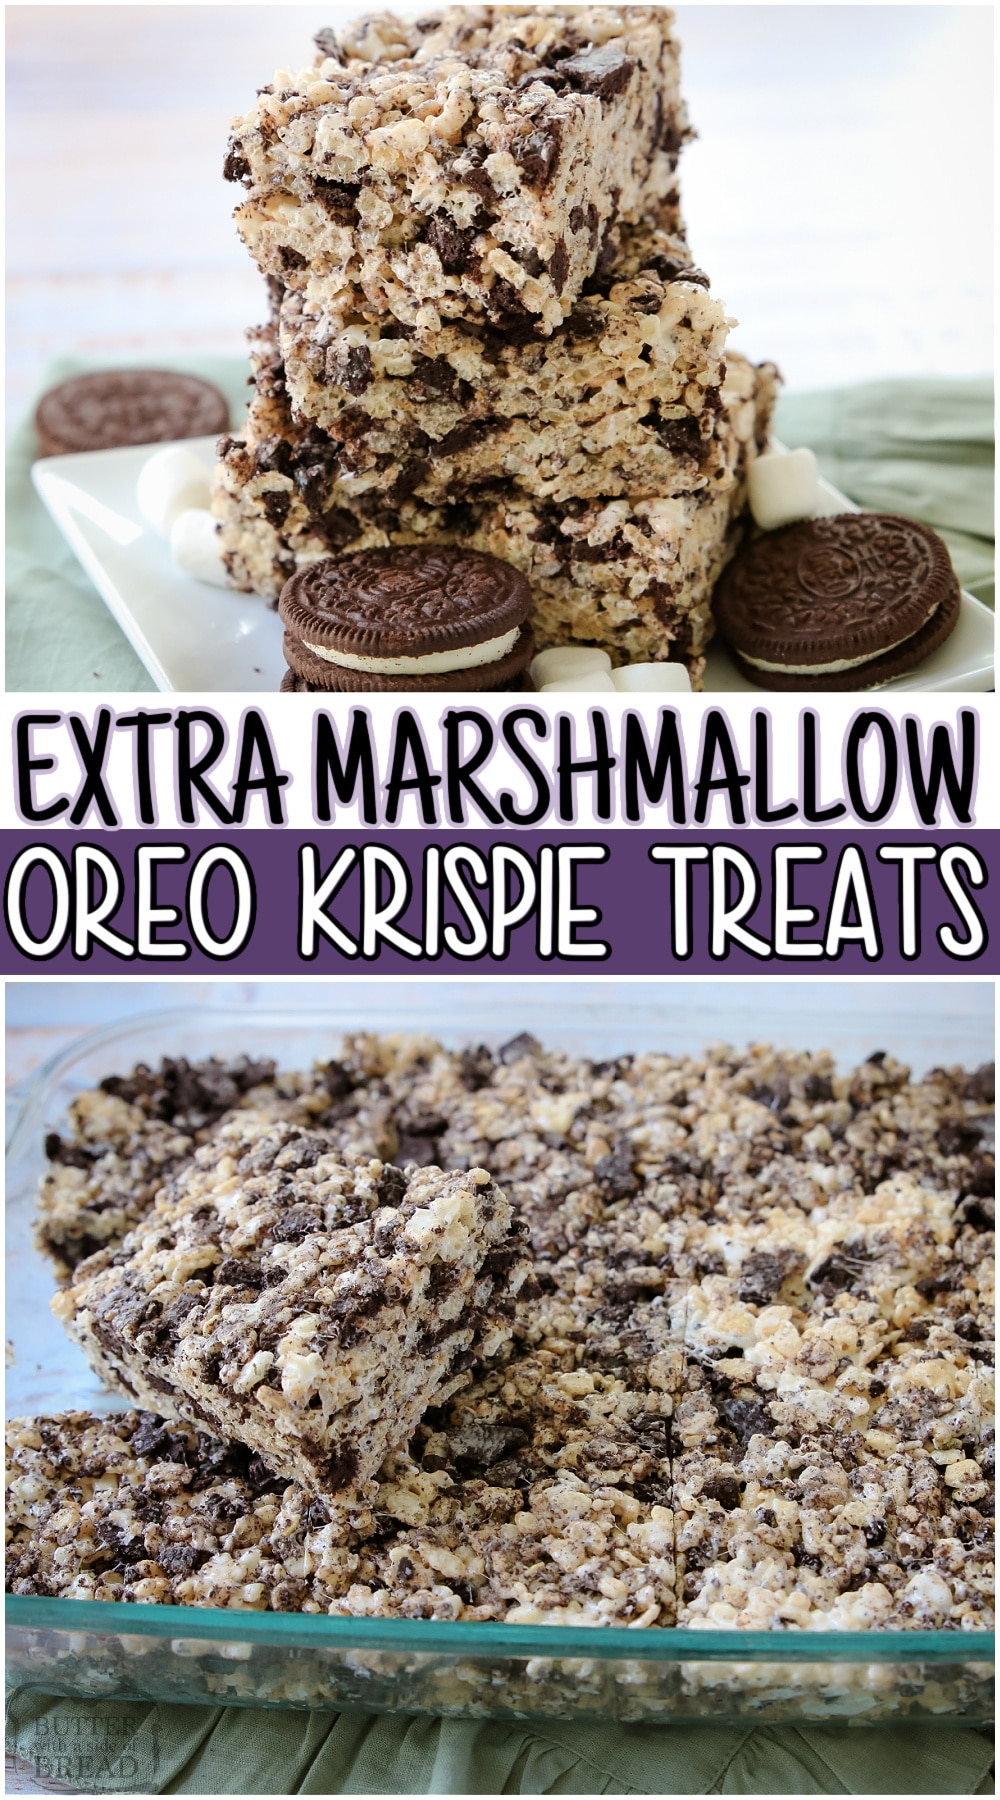 Oreo Krispie Treats are two favorites combined into one tasty marshmallow dessert! Cookies and Cream Rice Krispie Treats are soft & chewy with tons of marshmallows and crushed OREO cookies! #OREO #KRISPIES #Marshmallows #dessert #nobake #easyrecipe from BUTTER WITH A SIDE OF BREAD